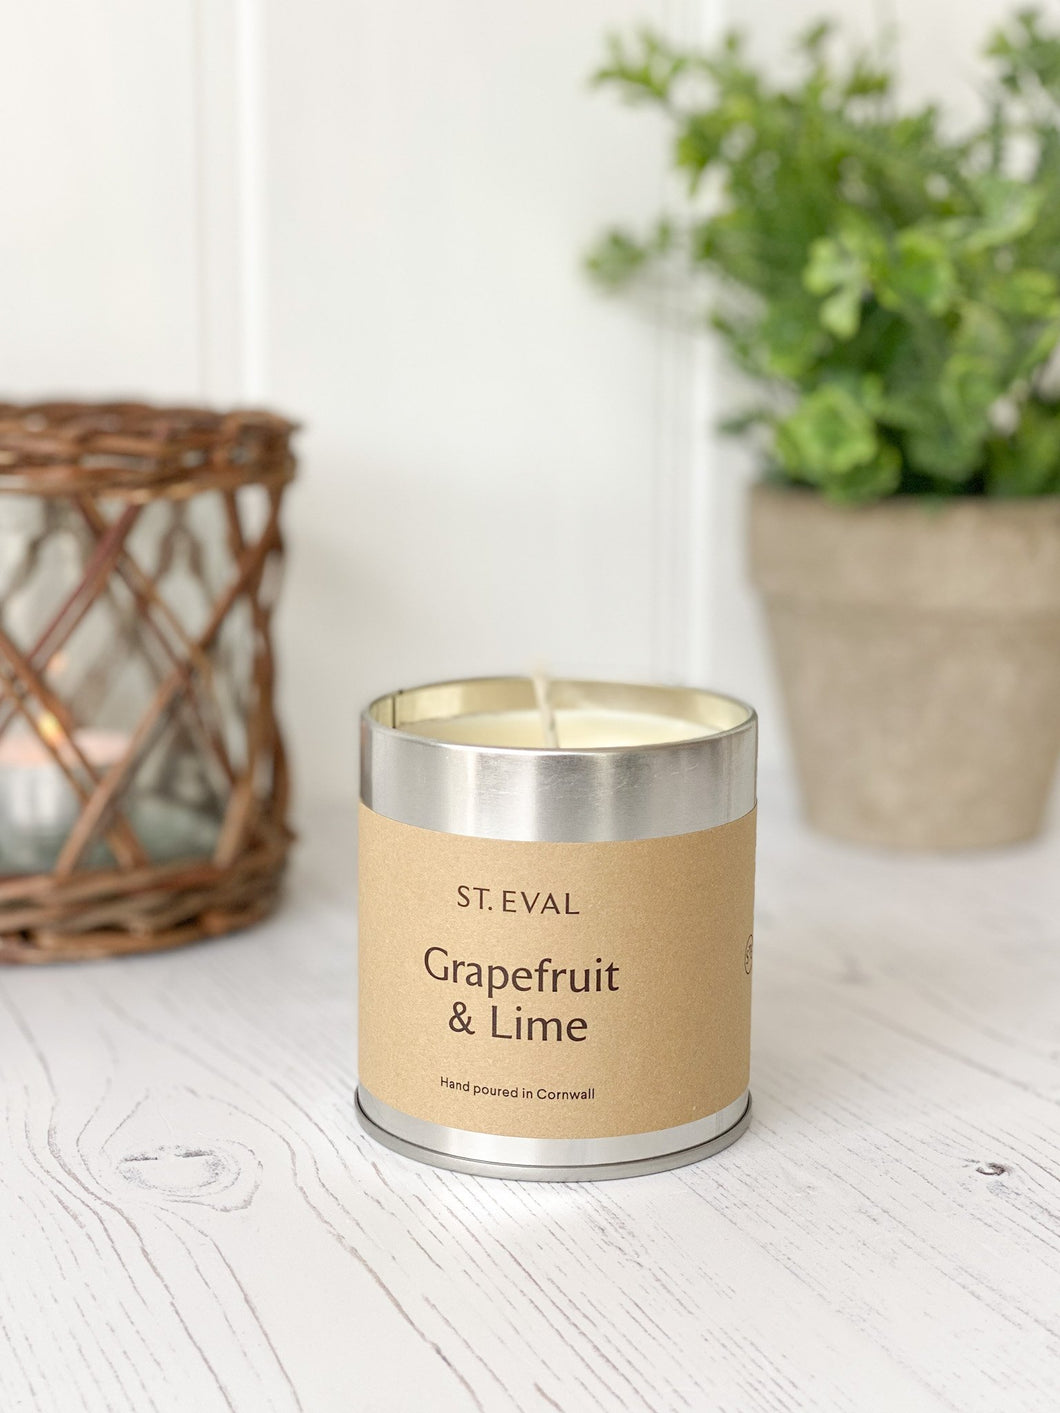 201-STE Grapefruit & Lime Tin Candle